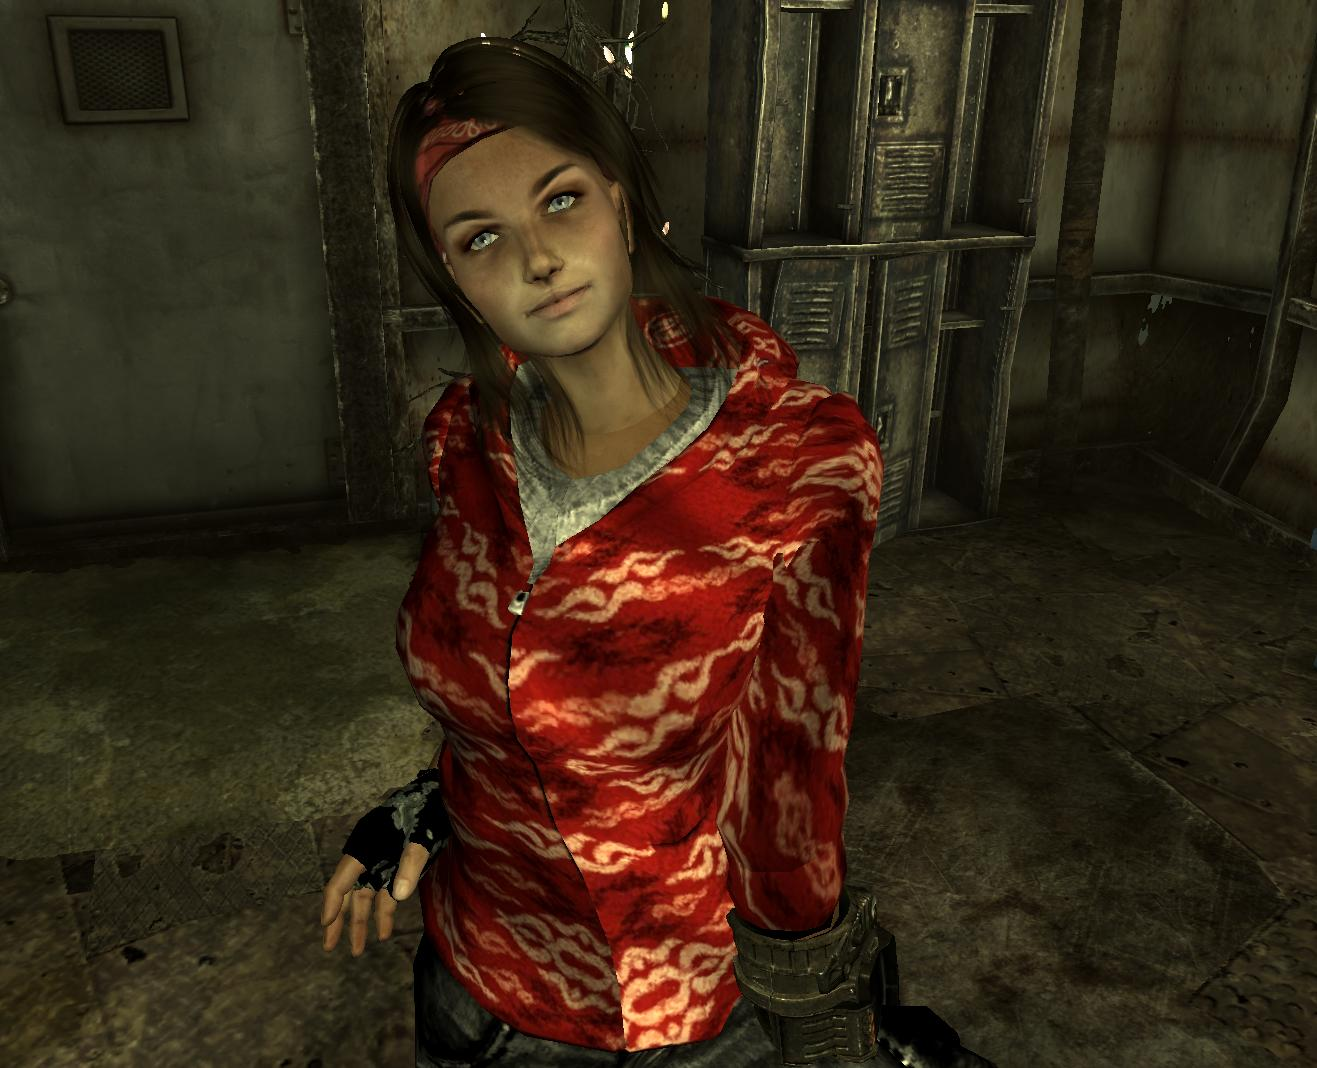 Fallout 3 Sexus intended for sexy pandora at fallout3 nexus - mods and community